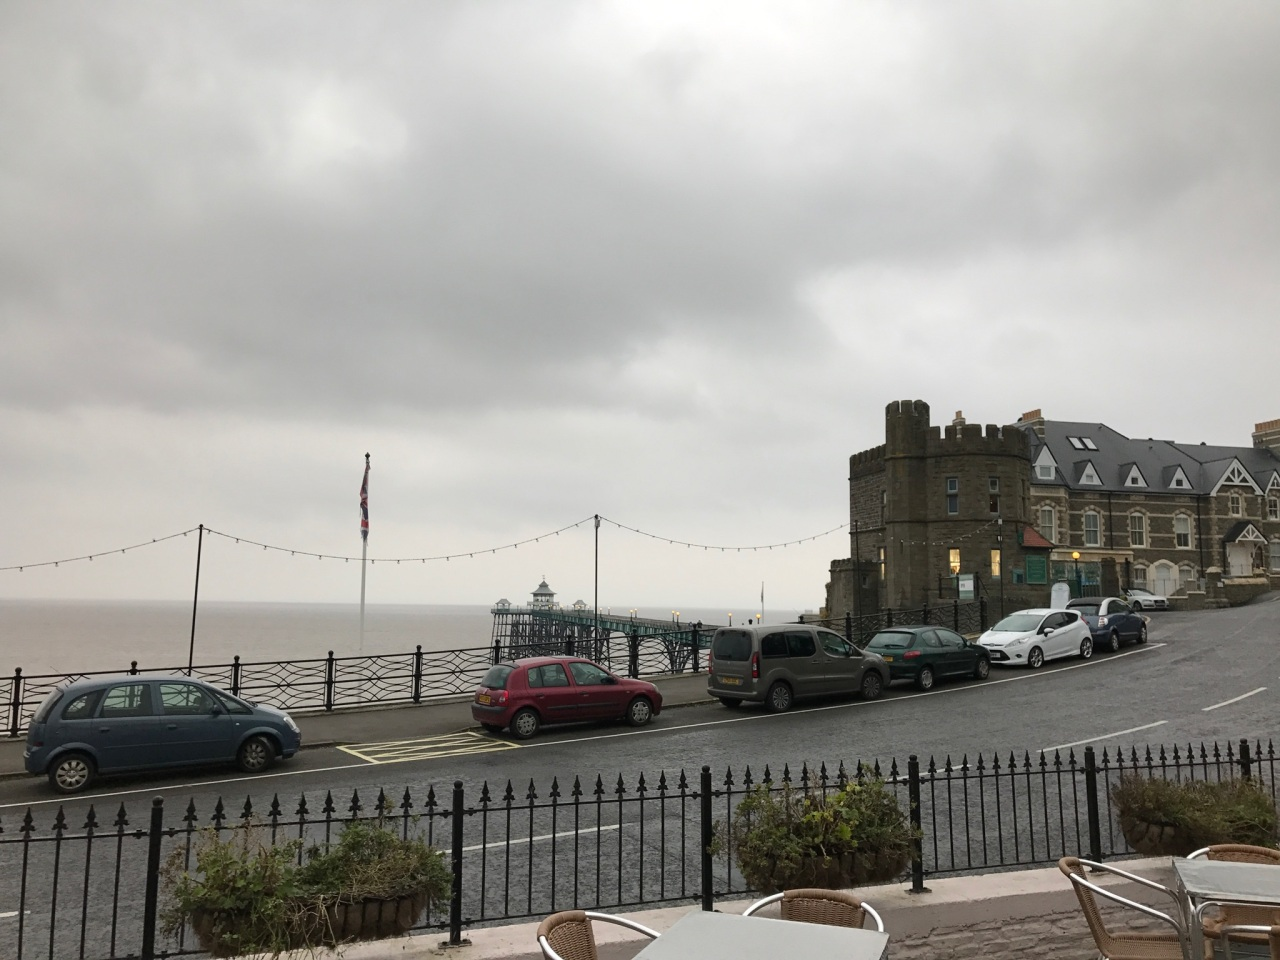 In Clevedon. [Photo by me, 2017.]